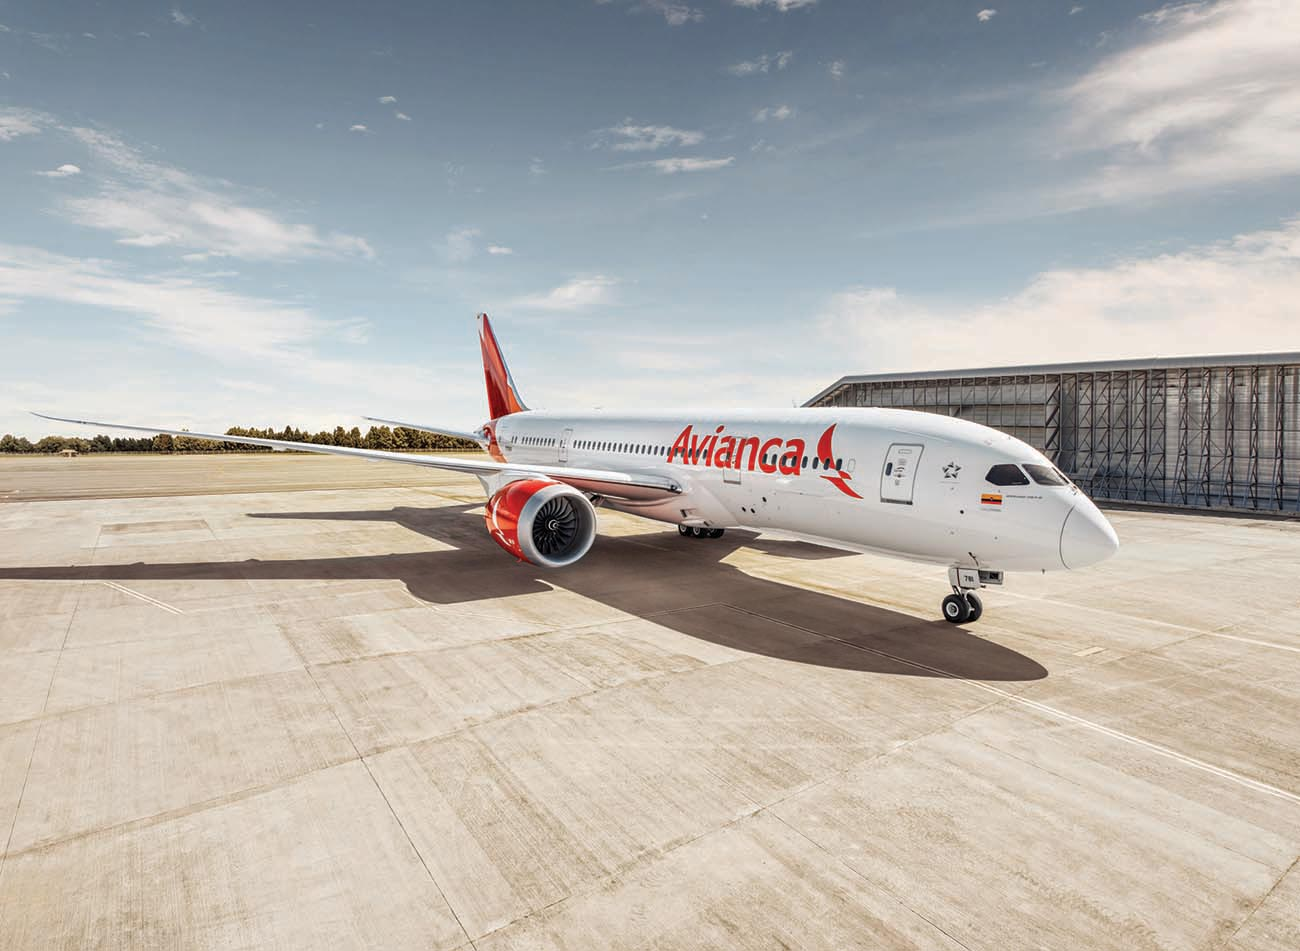 Avianca becomes the first airline in the Americas to integrate with Skyscanner through NDC